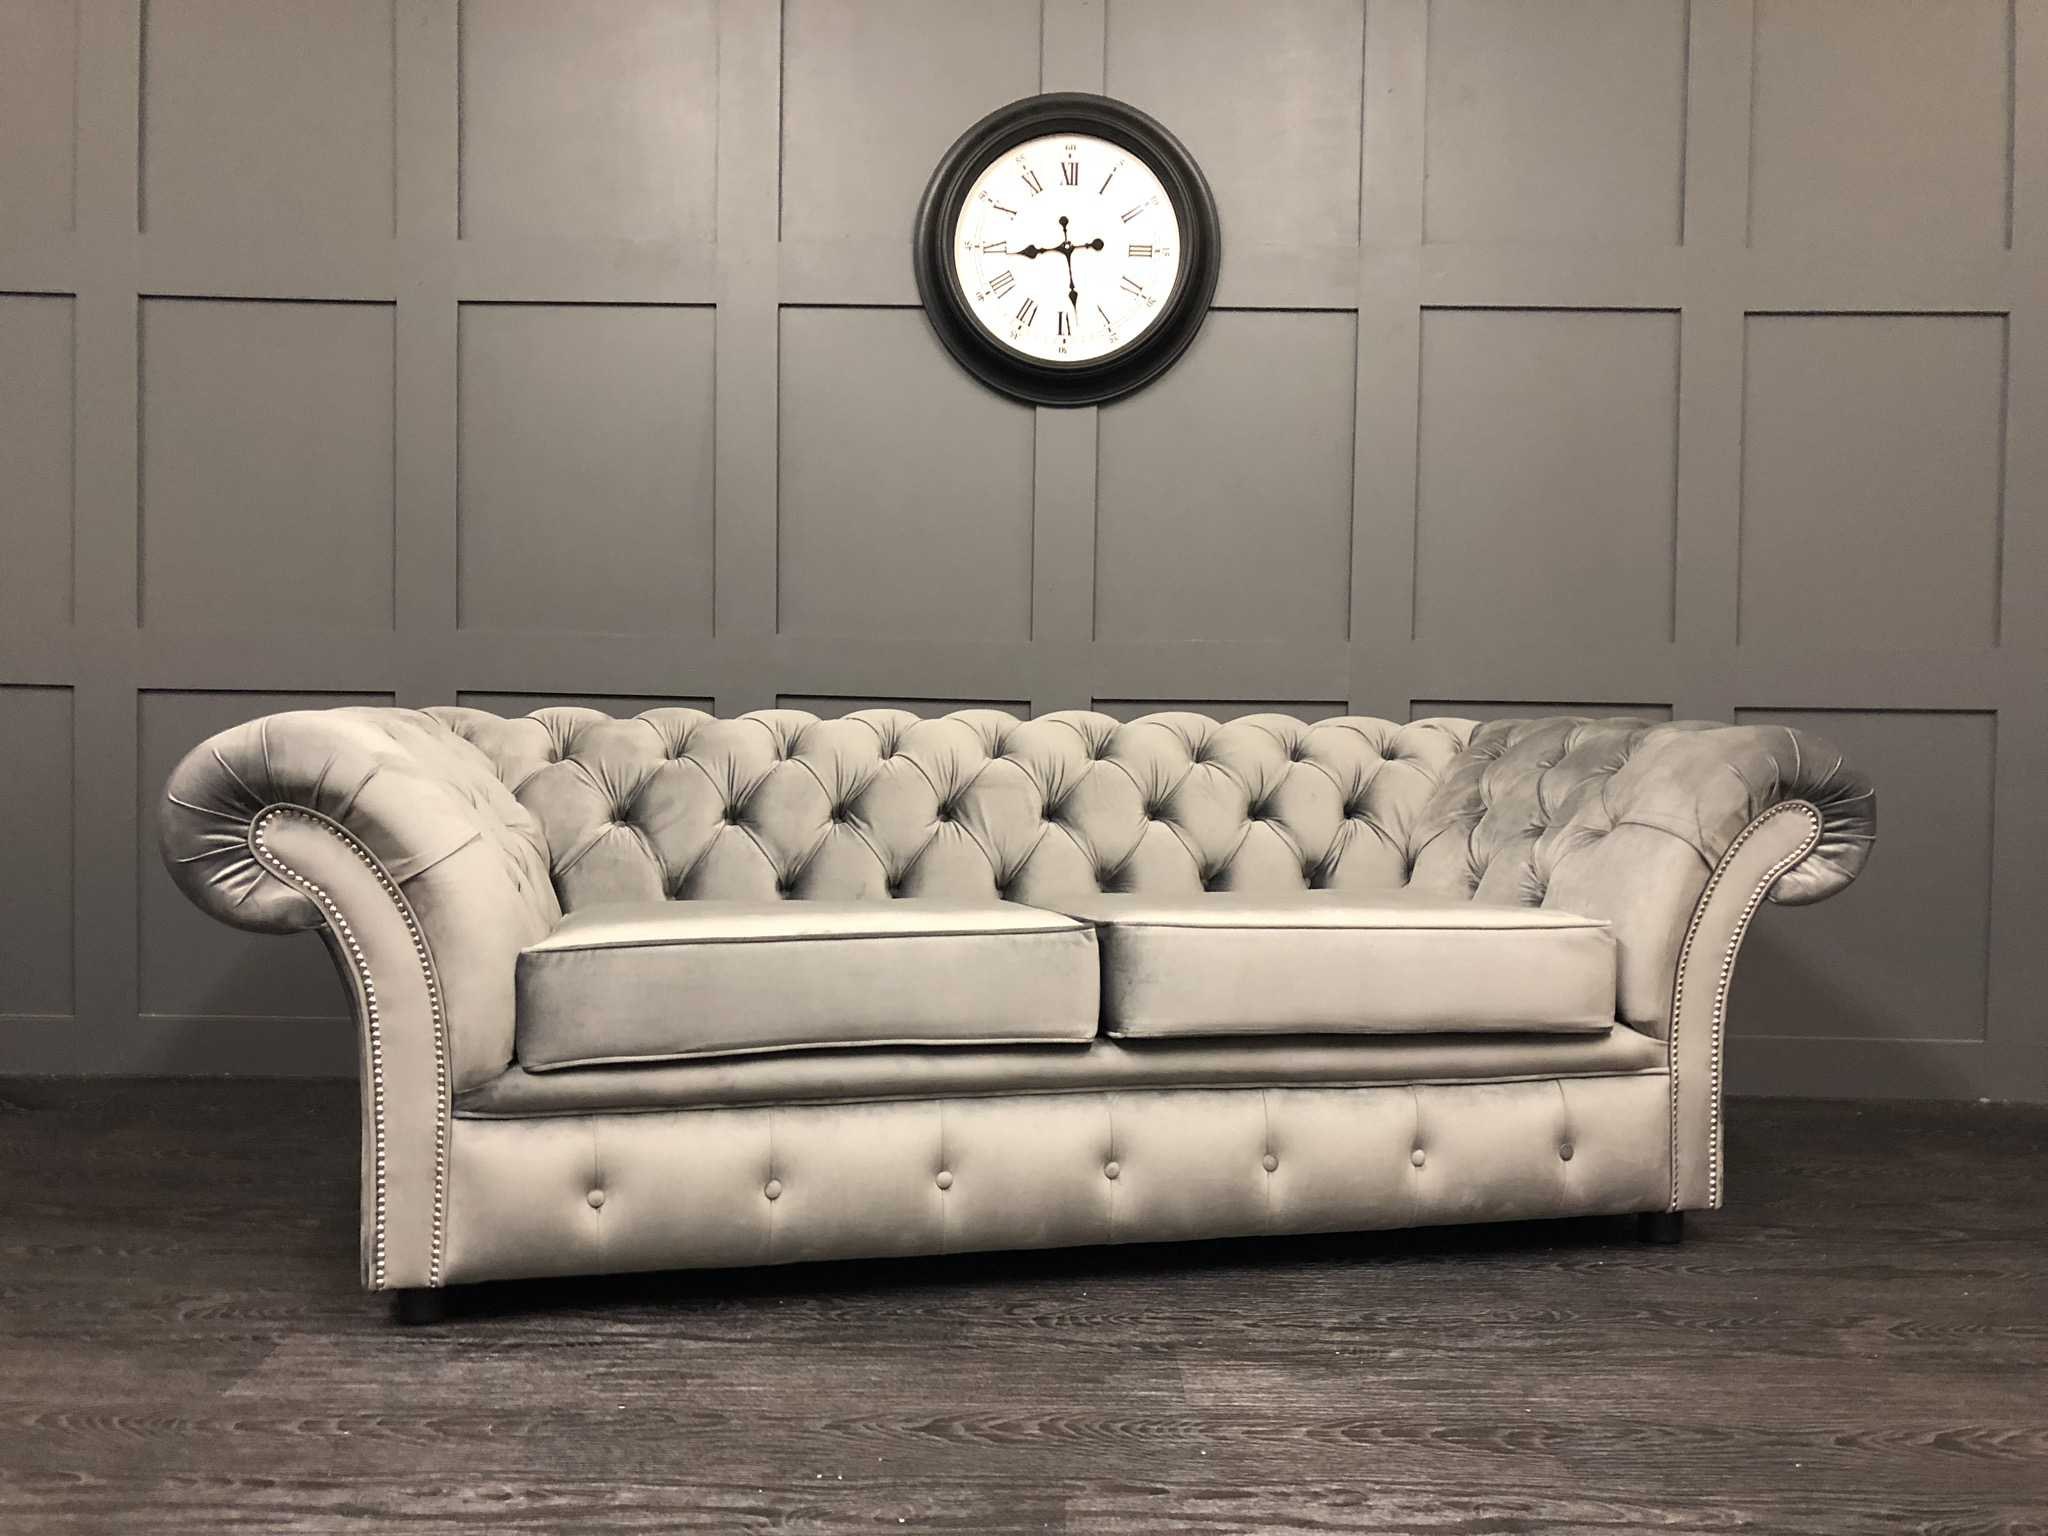 Cambio Steel plush velvet London Sofa Bed